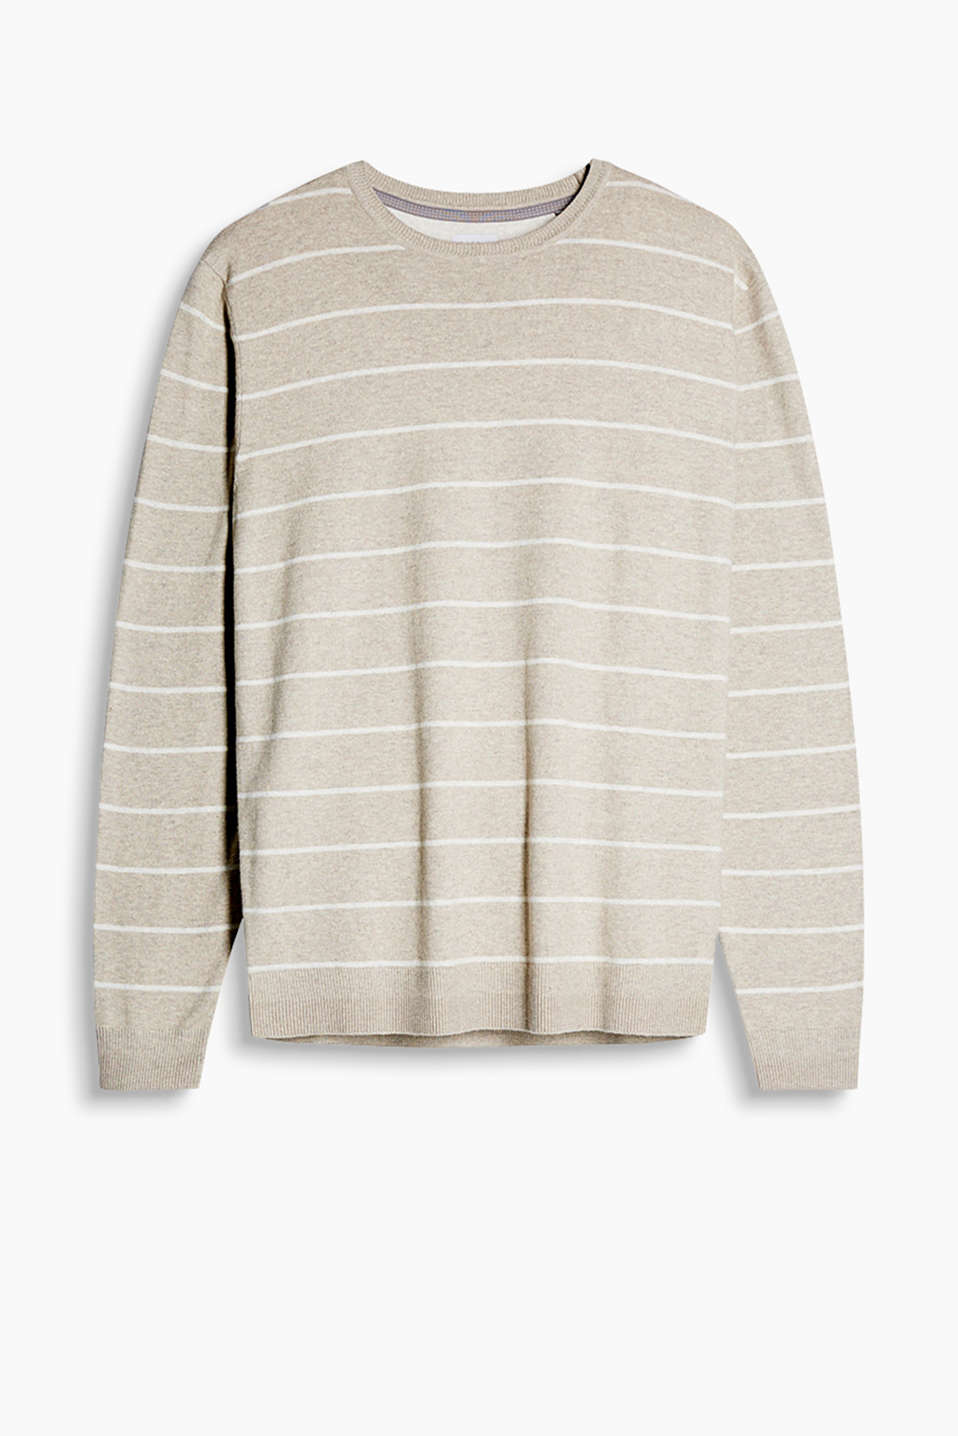 This warm, striped jumper with a percentage of cashmere is a great winter basic which is great to mix and match